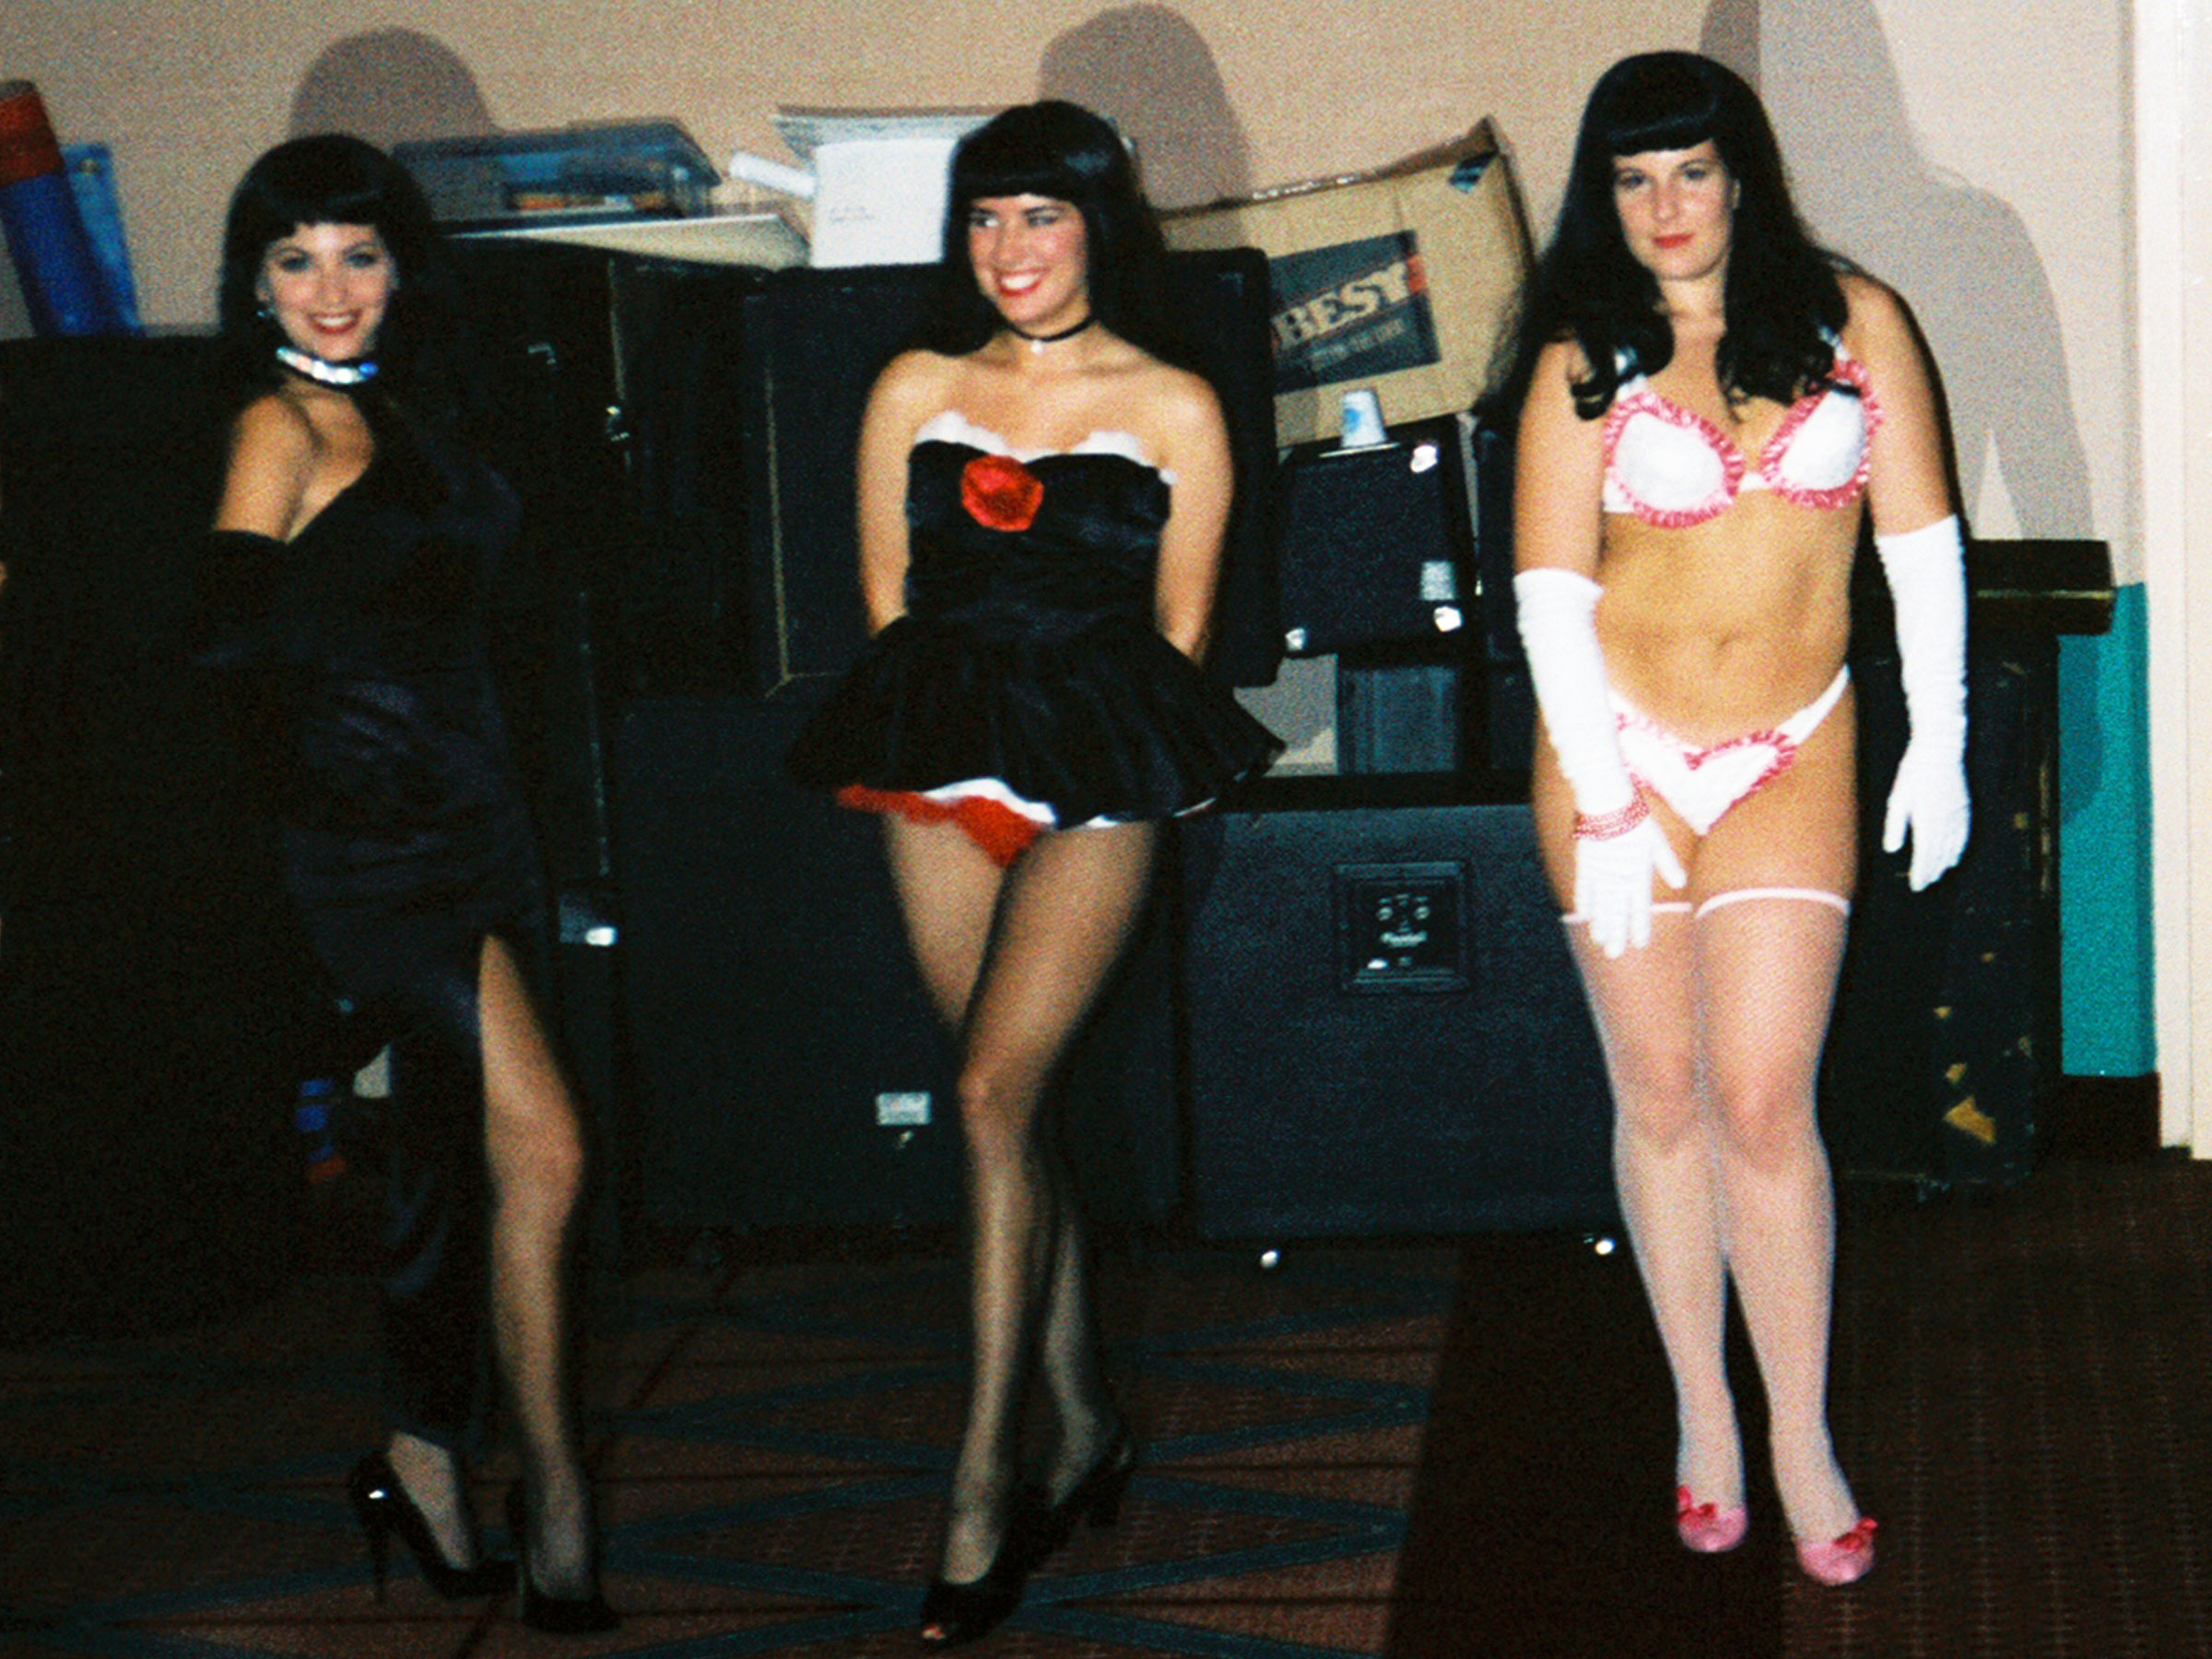 File:Bettie page look-a-likes.jpg - Wikimedia Commons